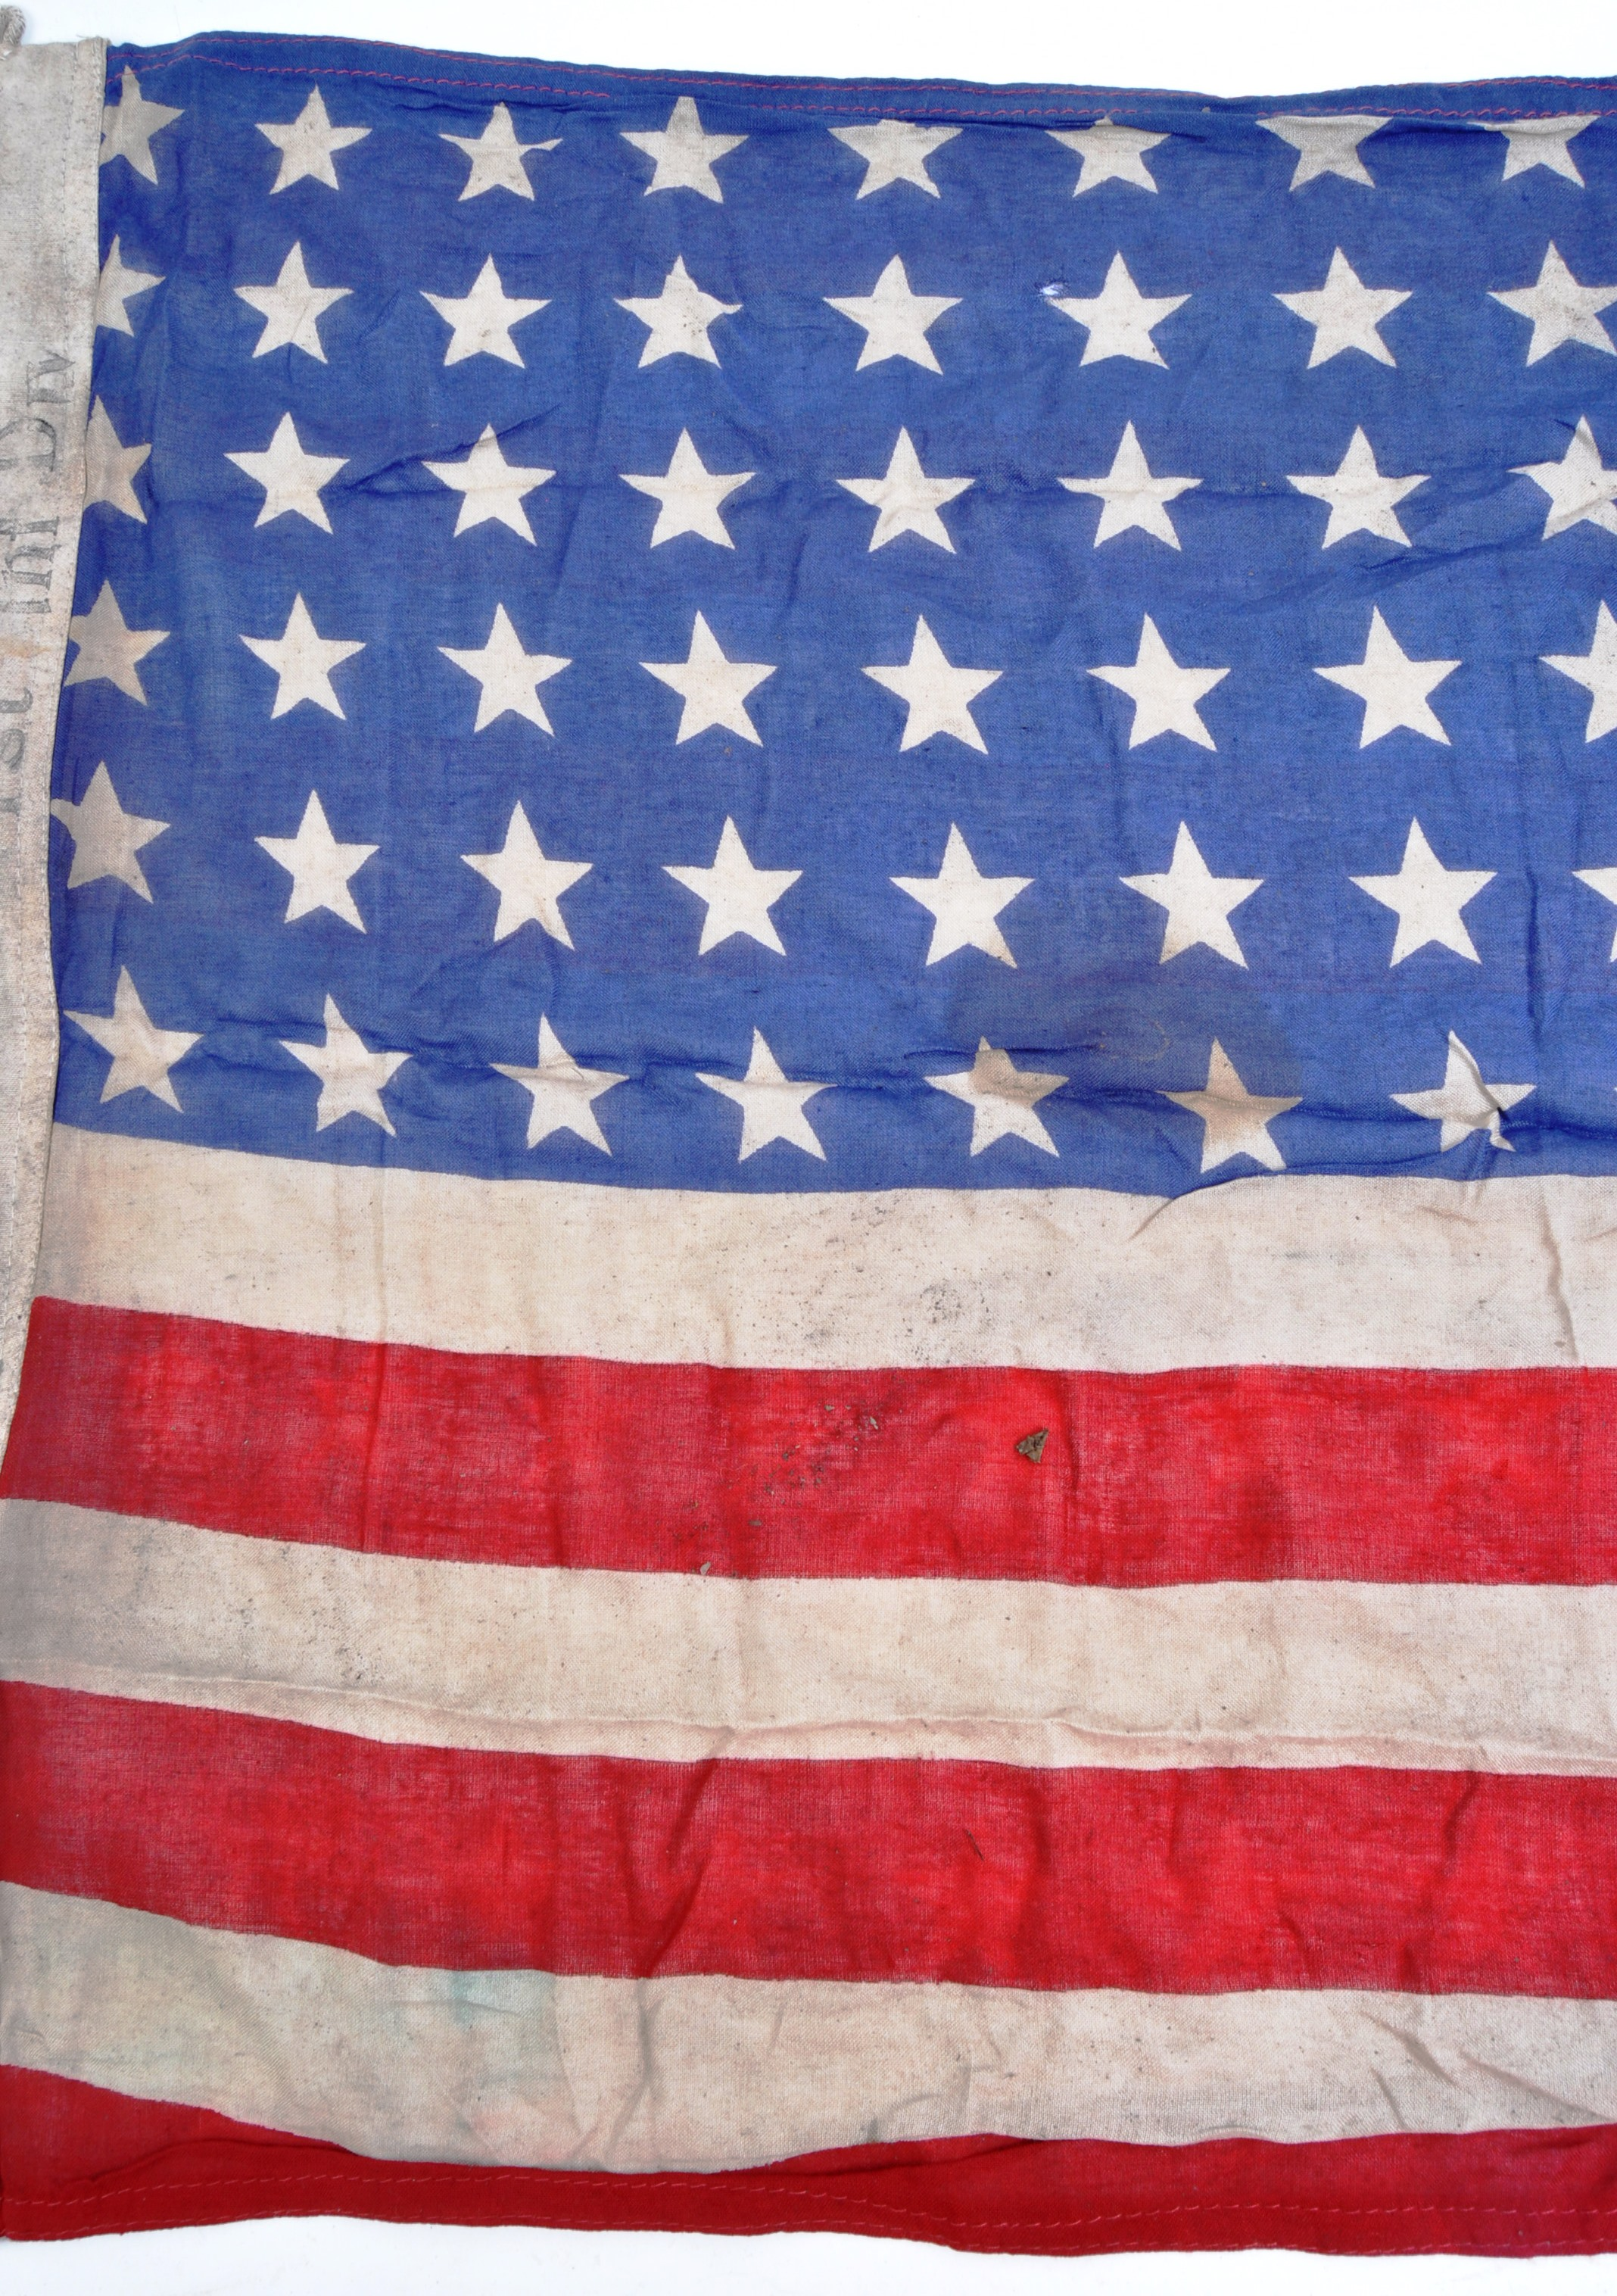 WWII SECOND WORLD WAR INTEREST FLAG - 1942 US ARMY DATED - Image 6 of 7